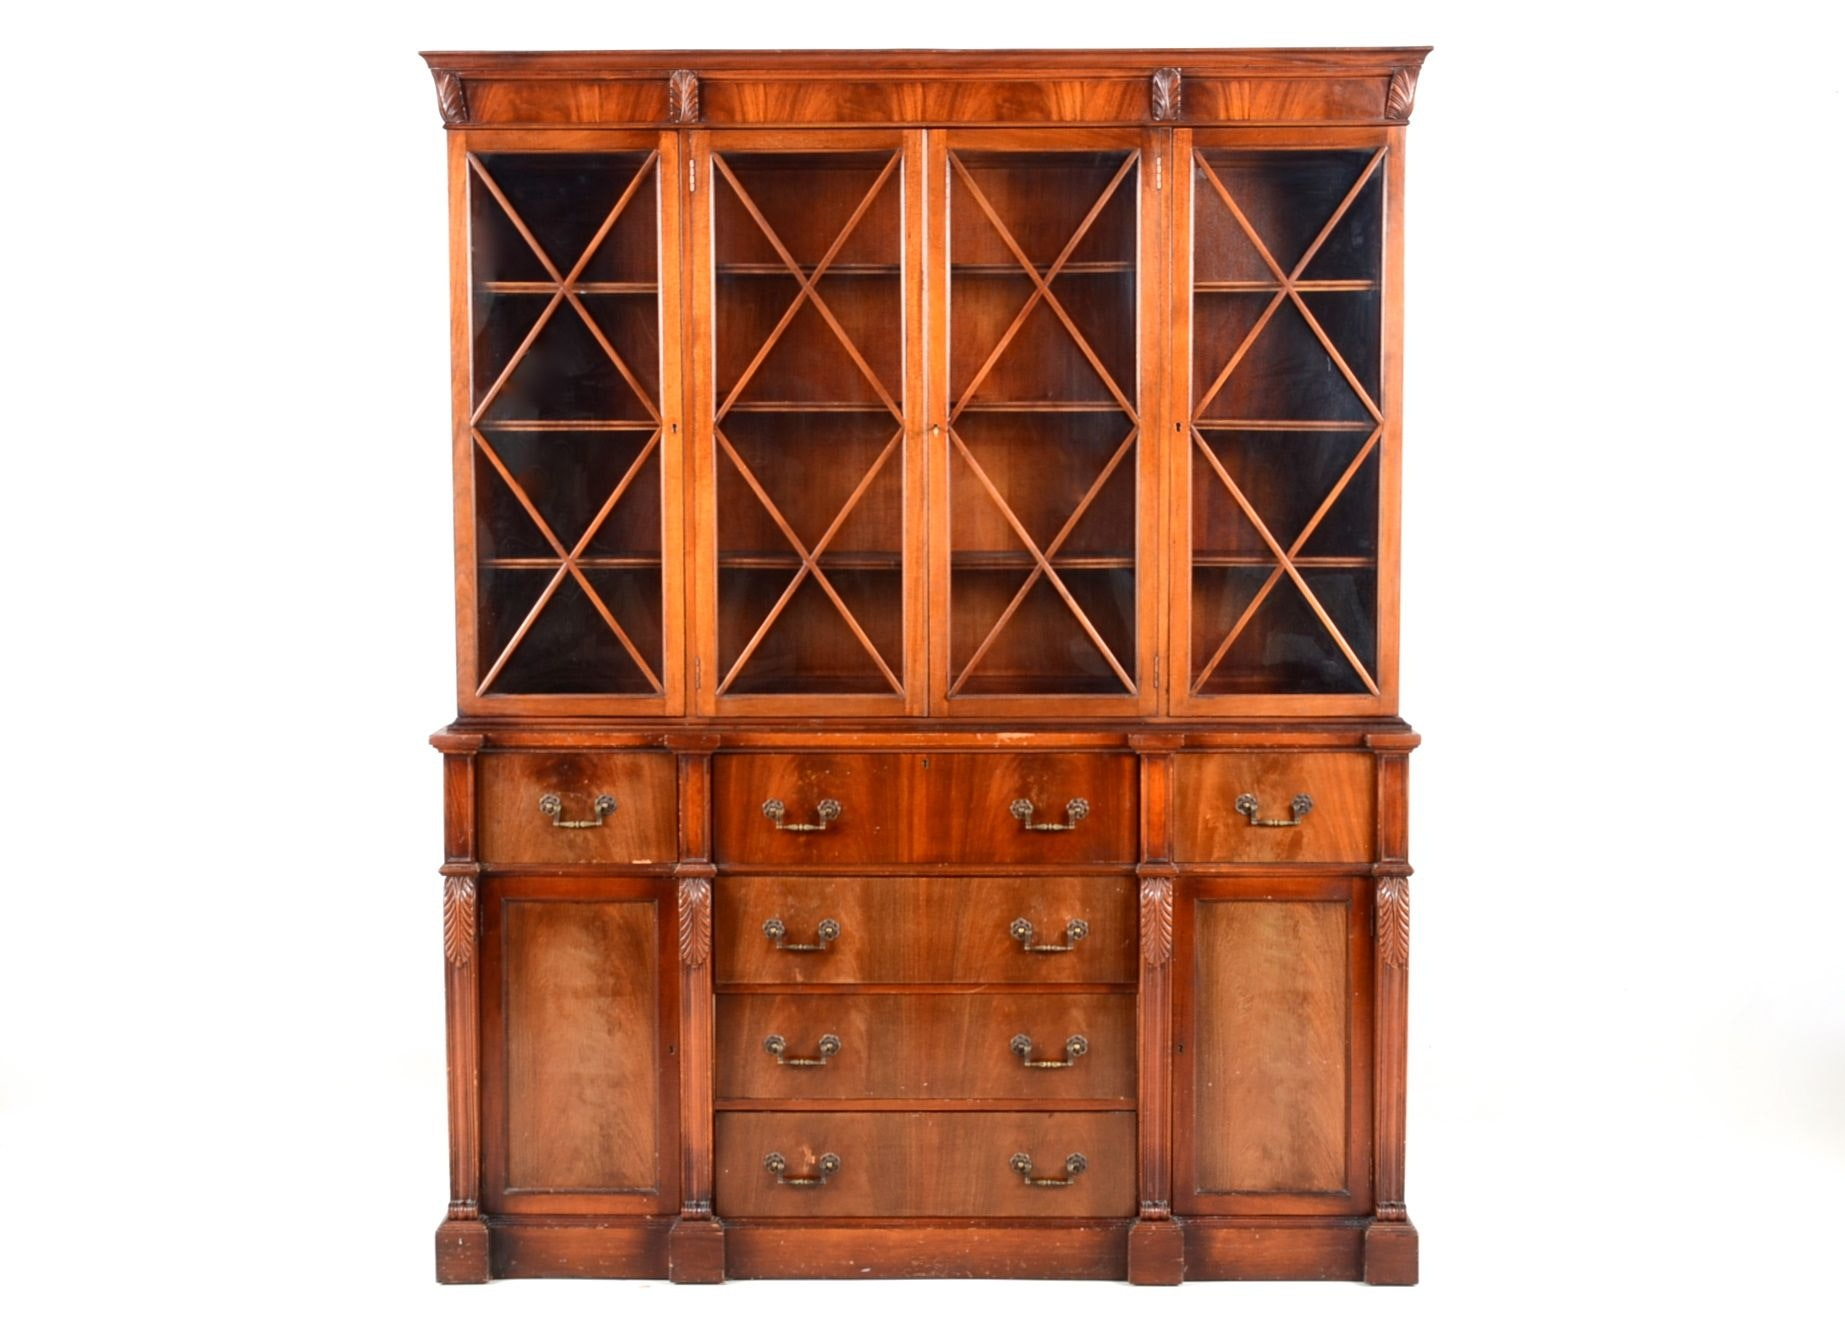 ... Saginaw Furniture Shops History By 1940 Regency Style Mahogany Two Part  China Cabinet Ebth ...